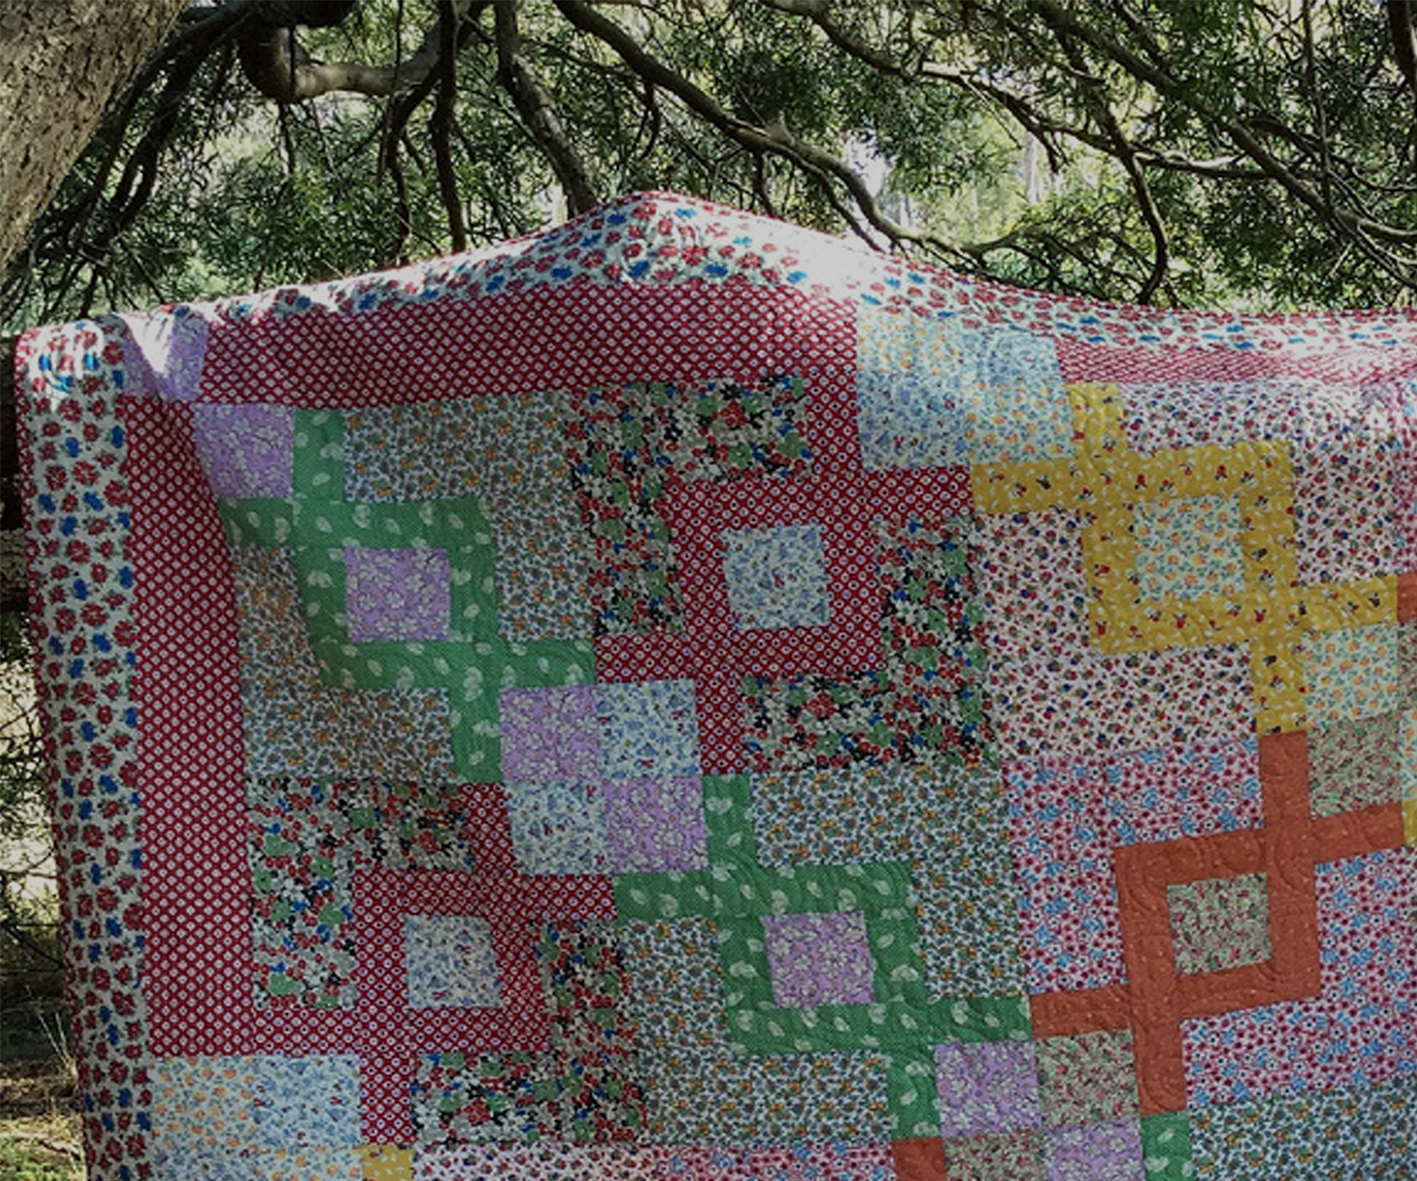 PATCHWORK-INTRO-BANNER - CHAIN-REACTION-QUILT-POST-IMAGE